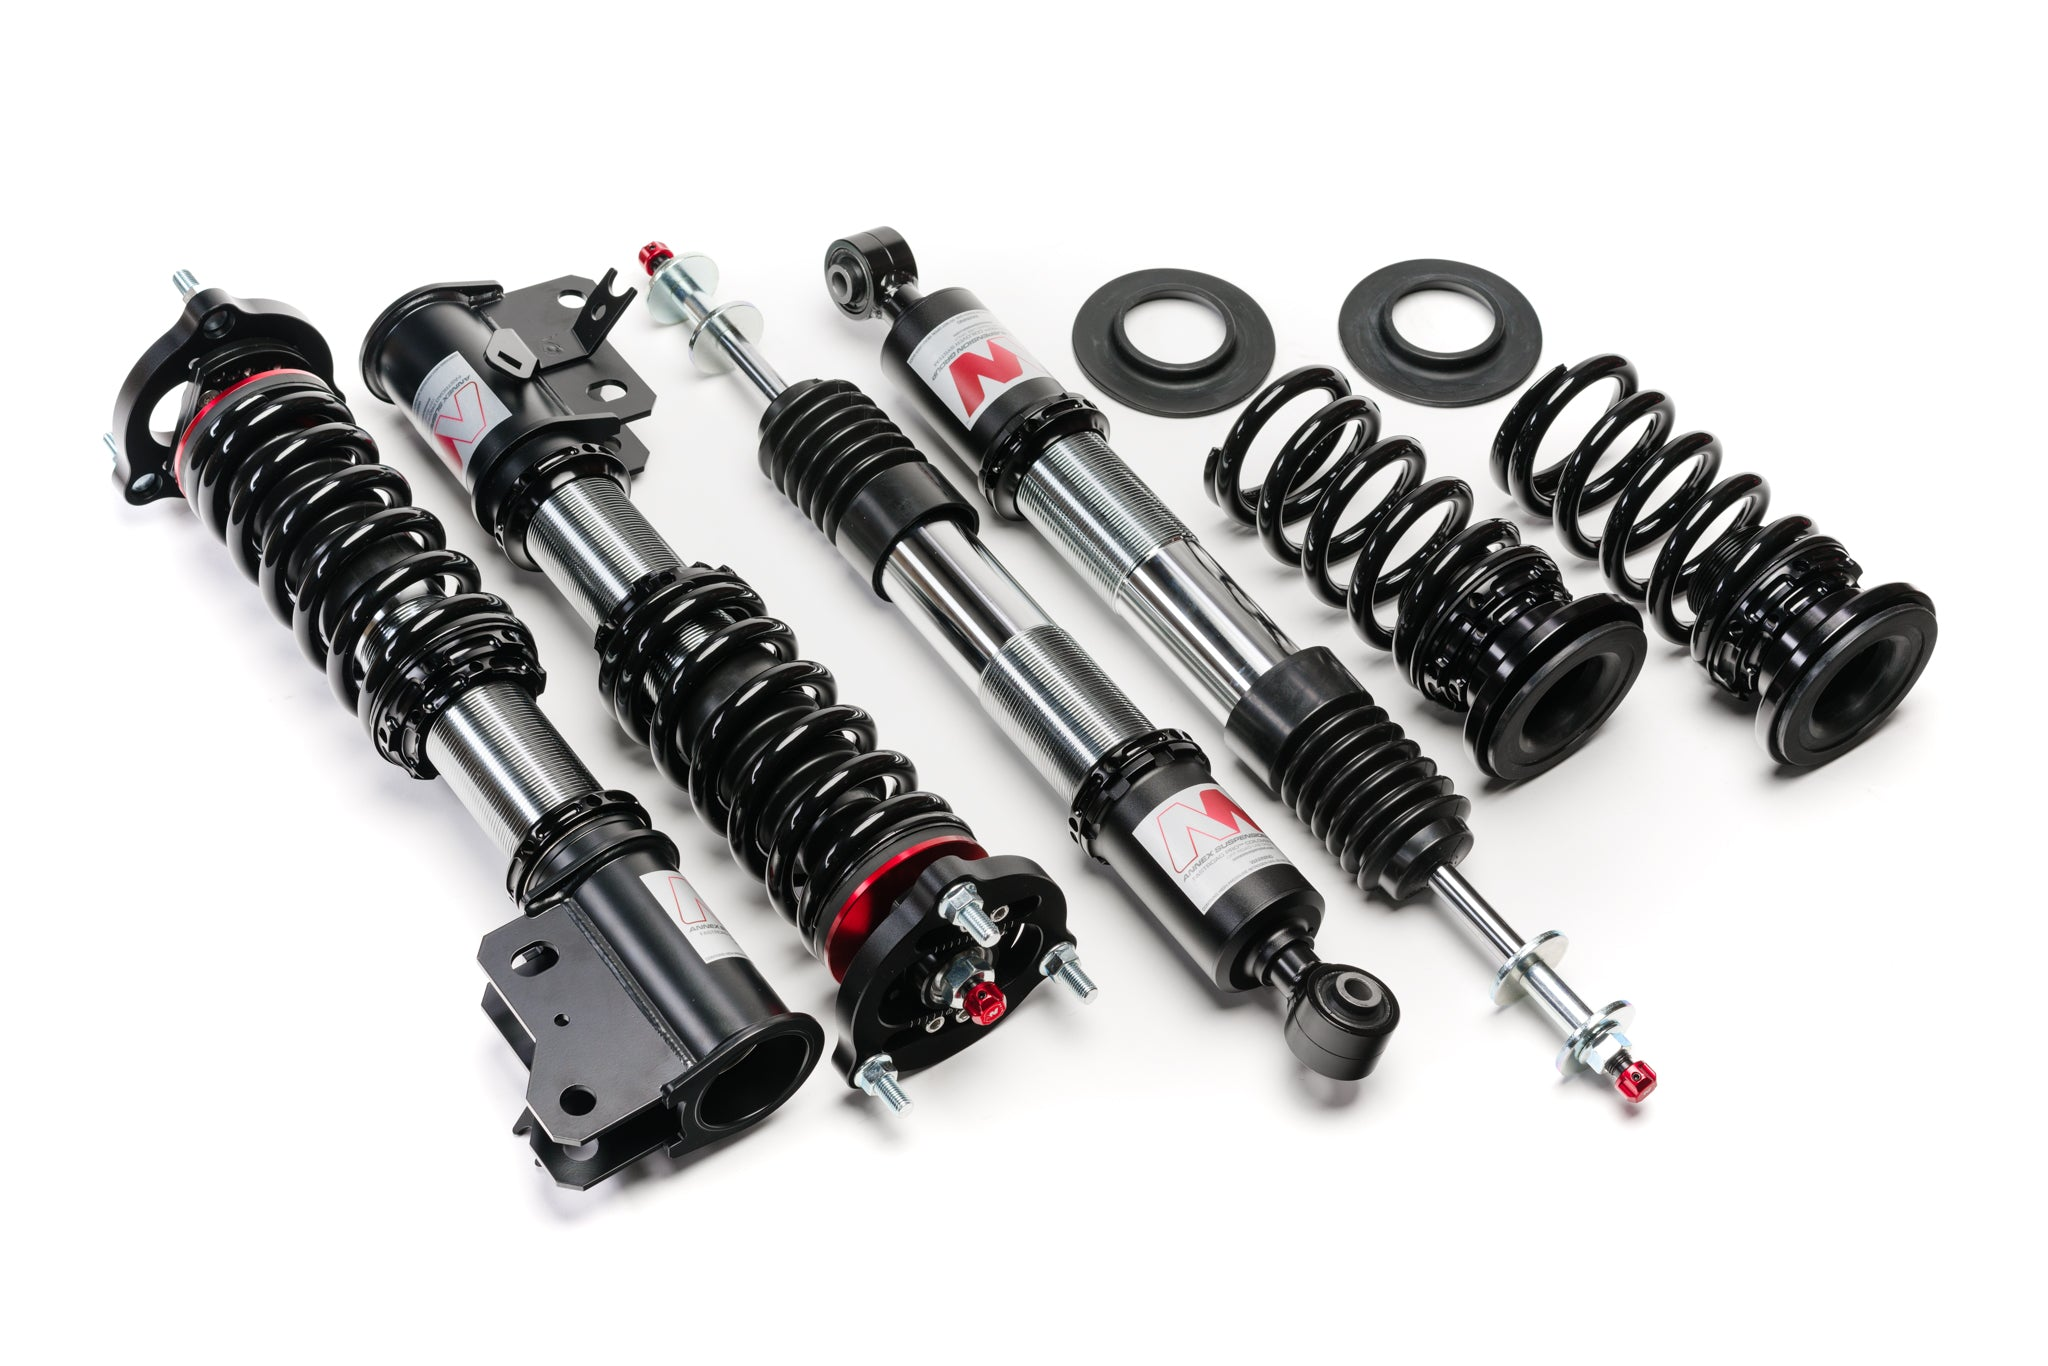 Fastroad Pro Coilovers by Annex Suspension Honda Civic SI Coilovers for Daily Driving (Street Driving and Track Comfort) 2006 2007 2008 2009 2010 2011